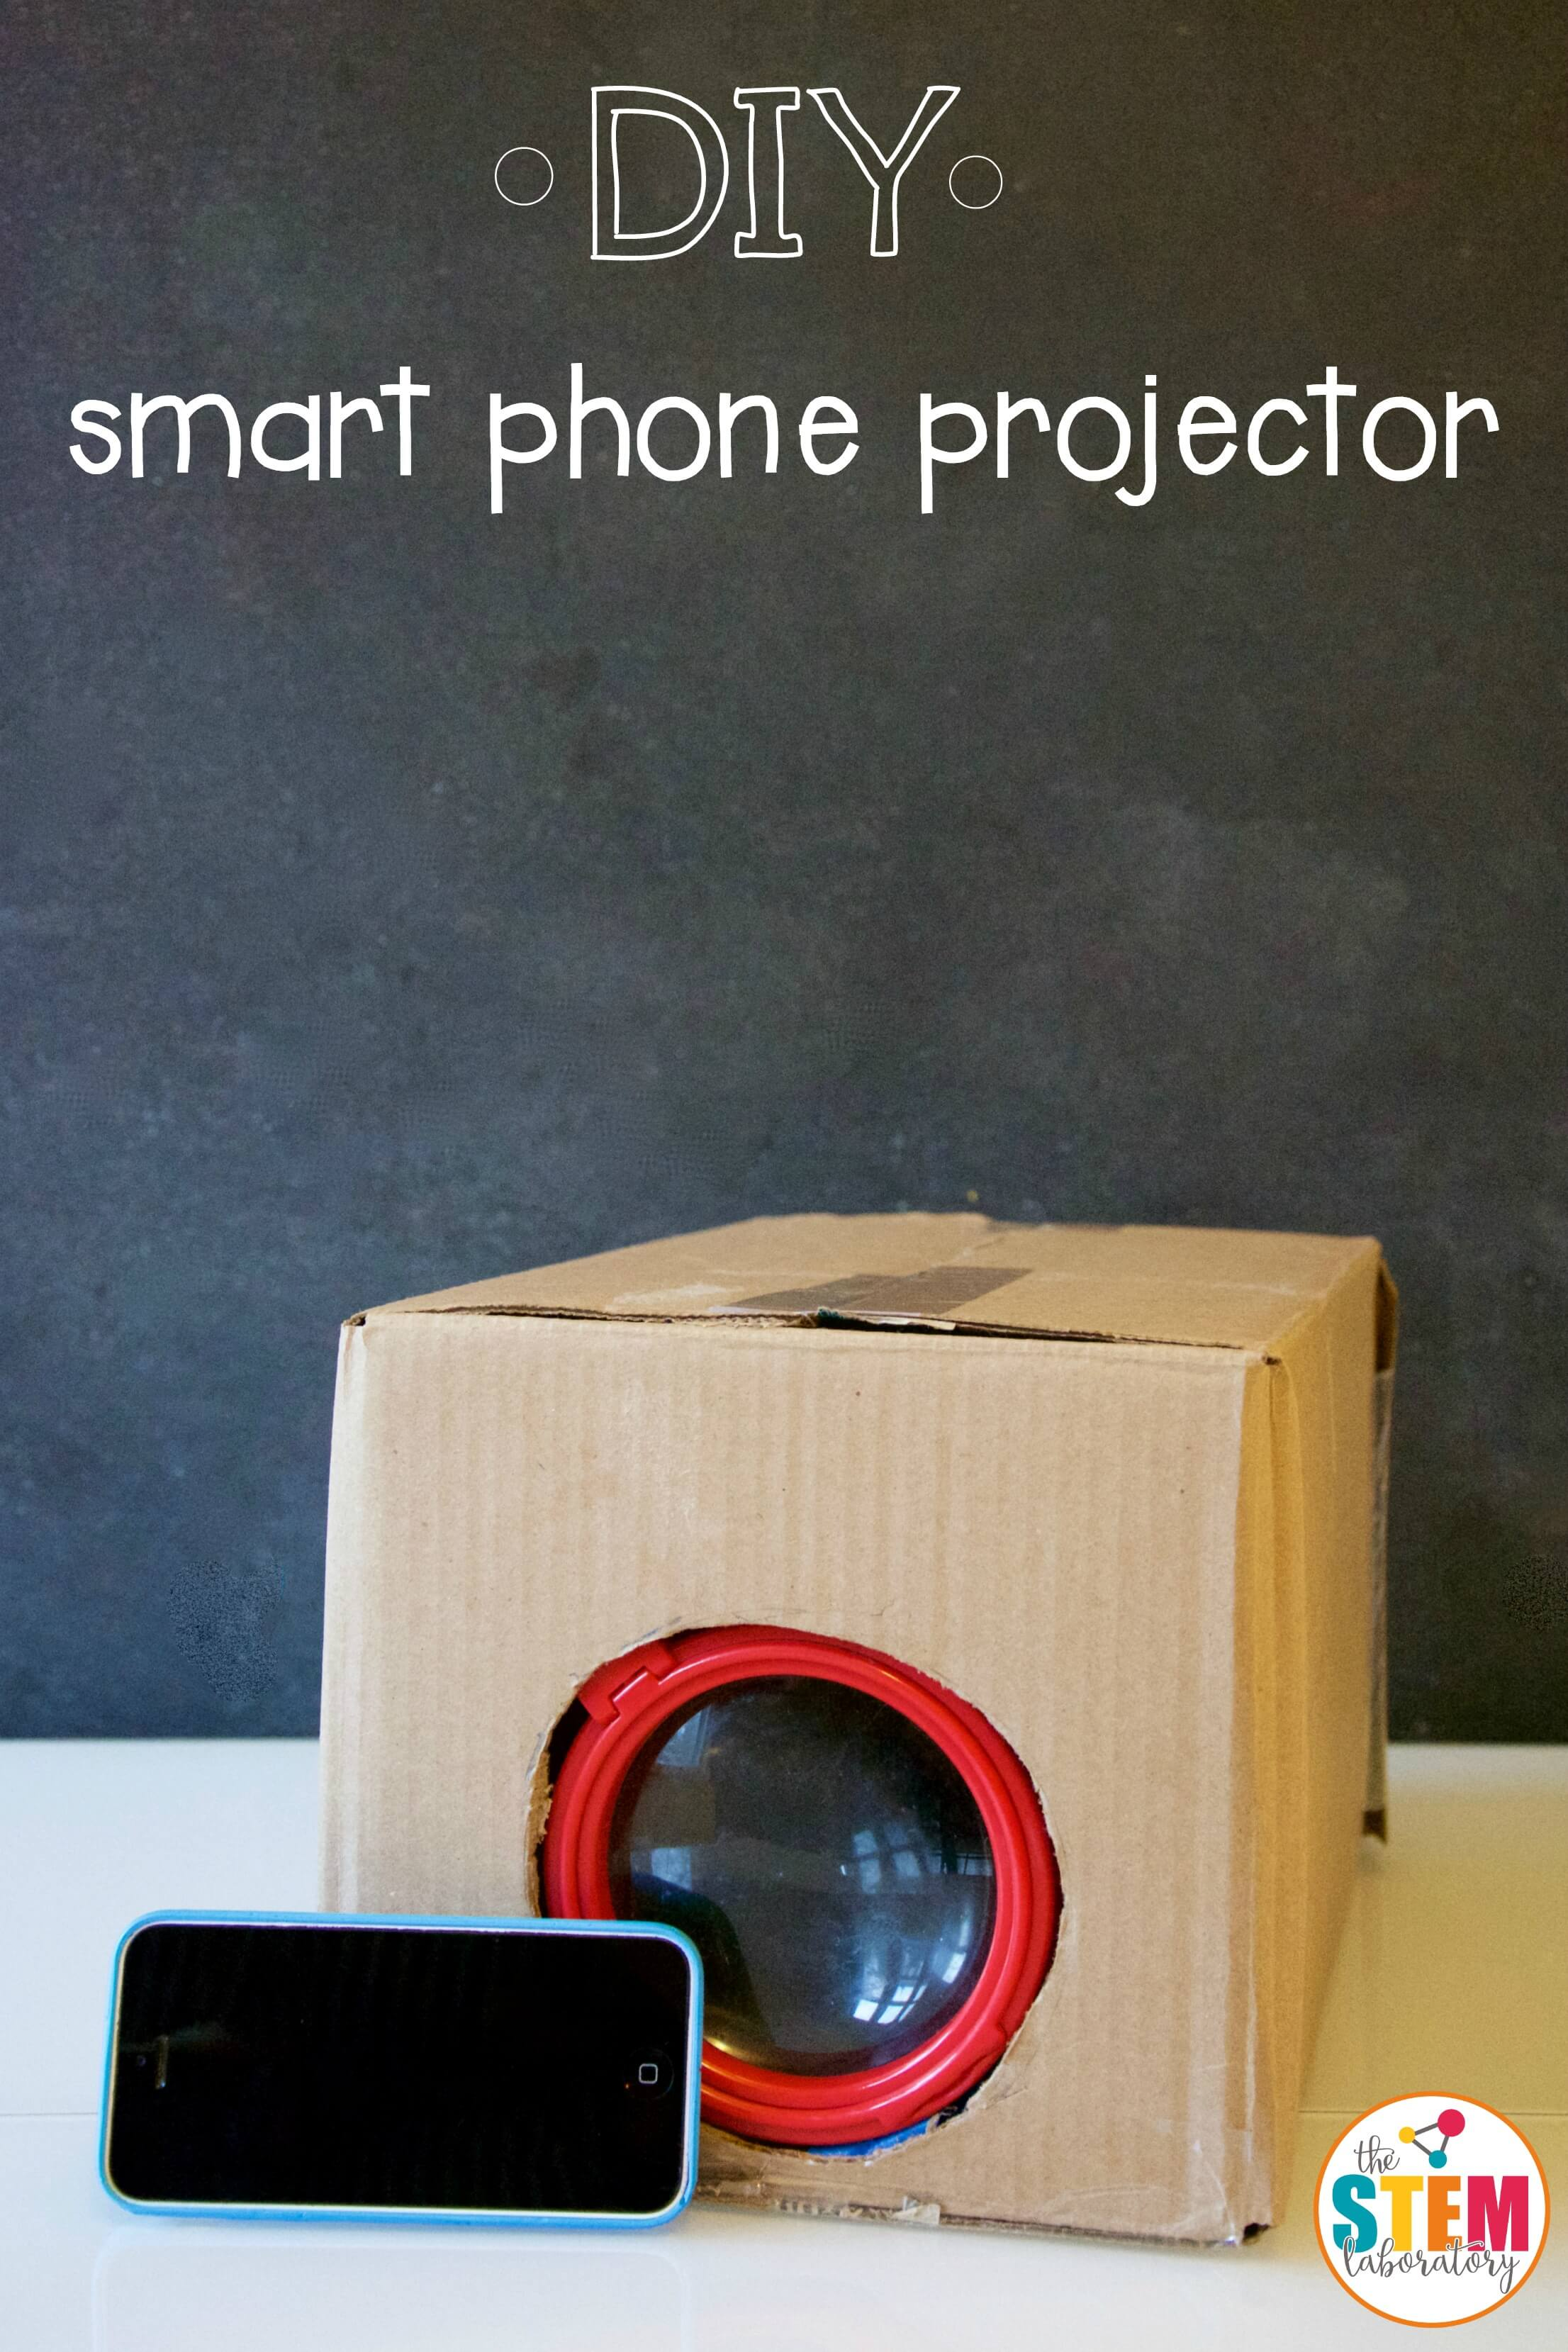 Structured Wiring Enclosure Uk Diy Phone Projector No Magnifying Glass Do It Your Definition